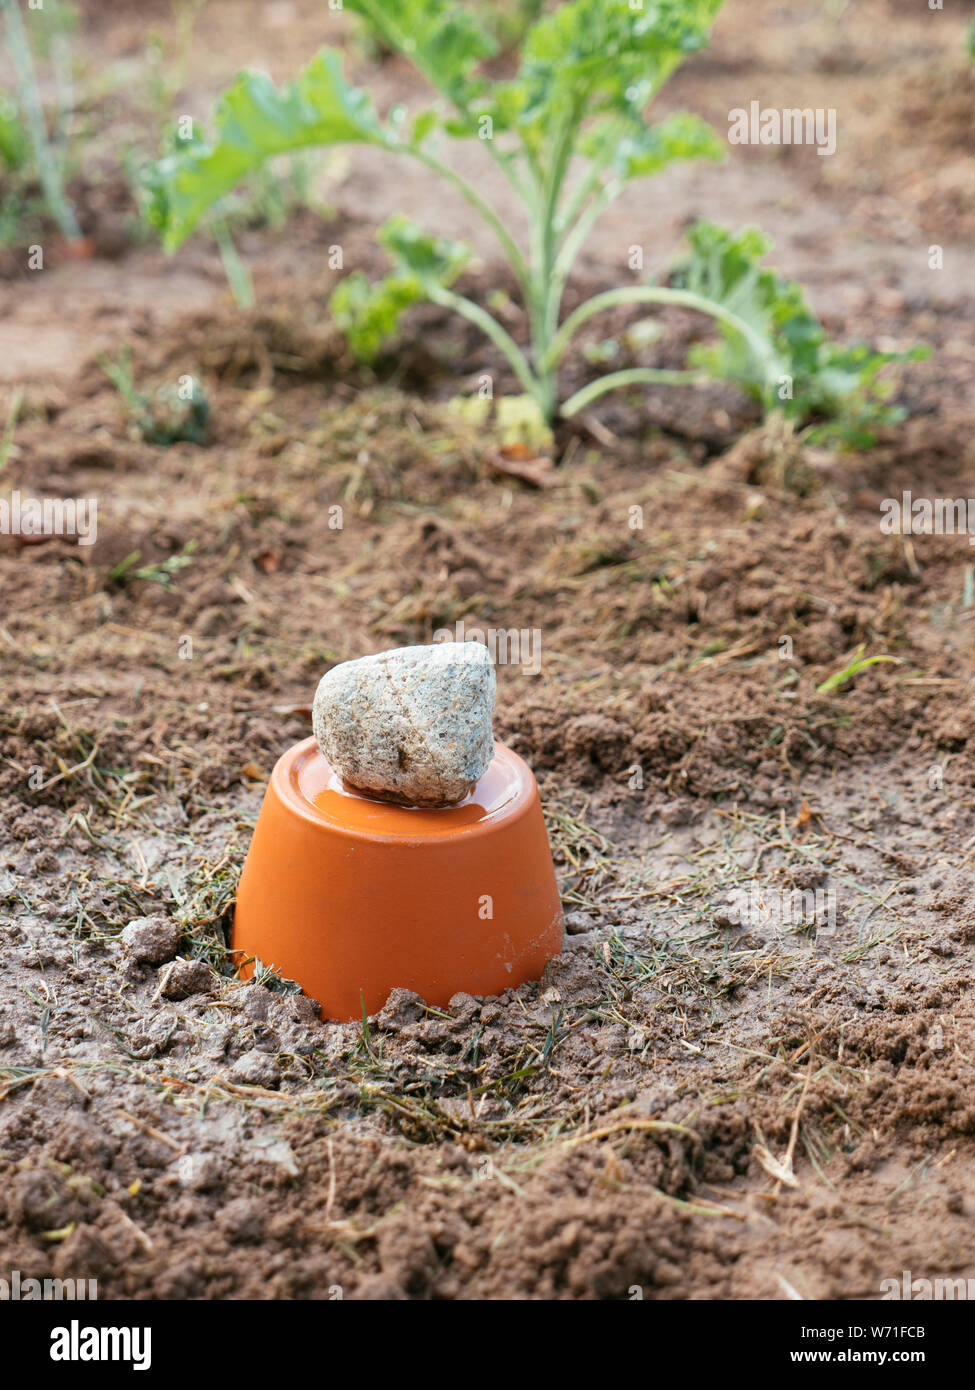 Moist clay pot irrigation system in a vegetable garden. Stock Photo